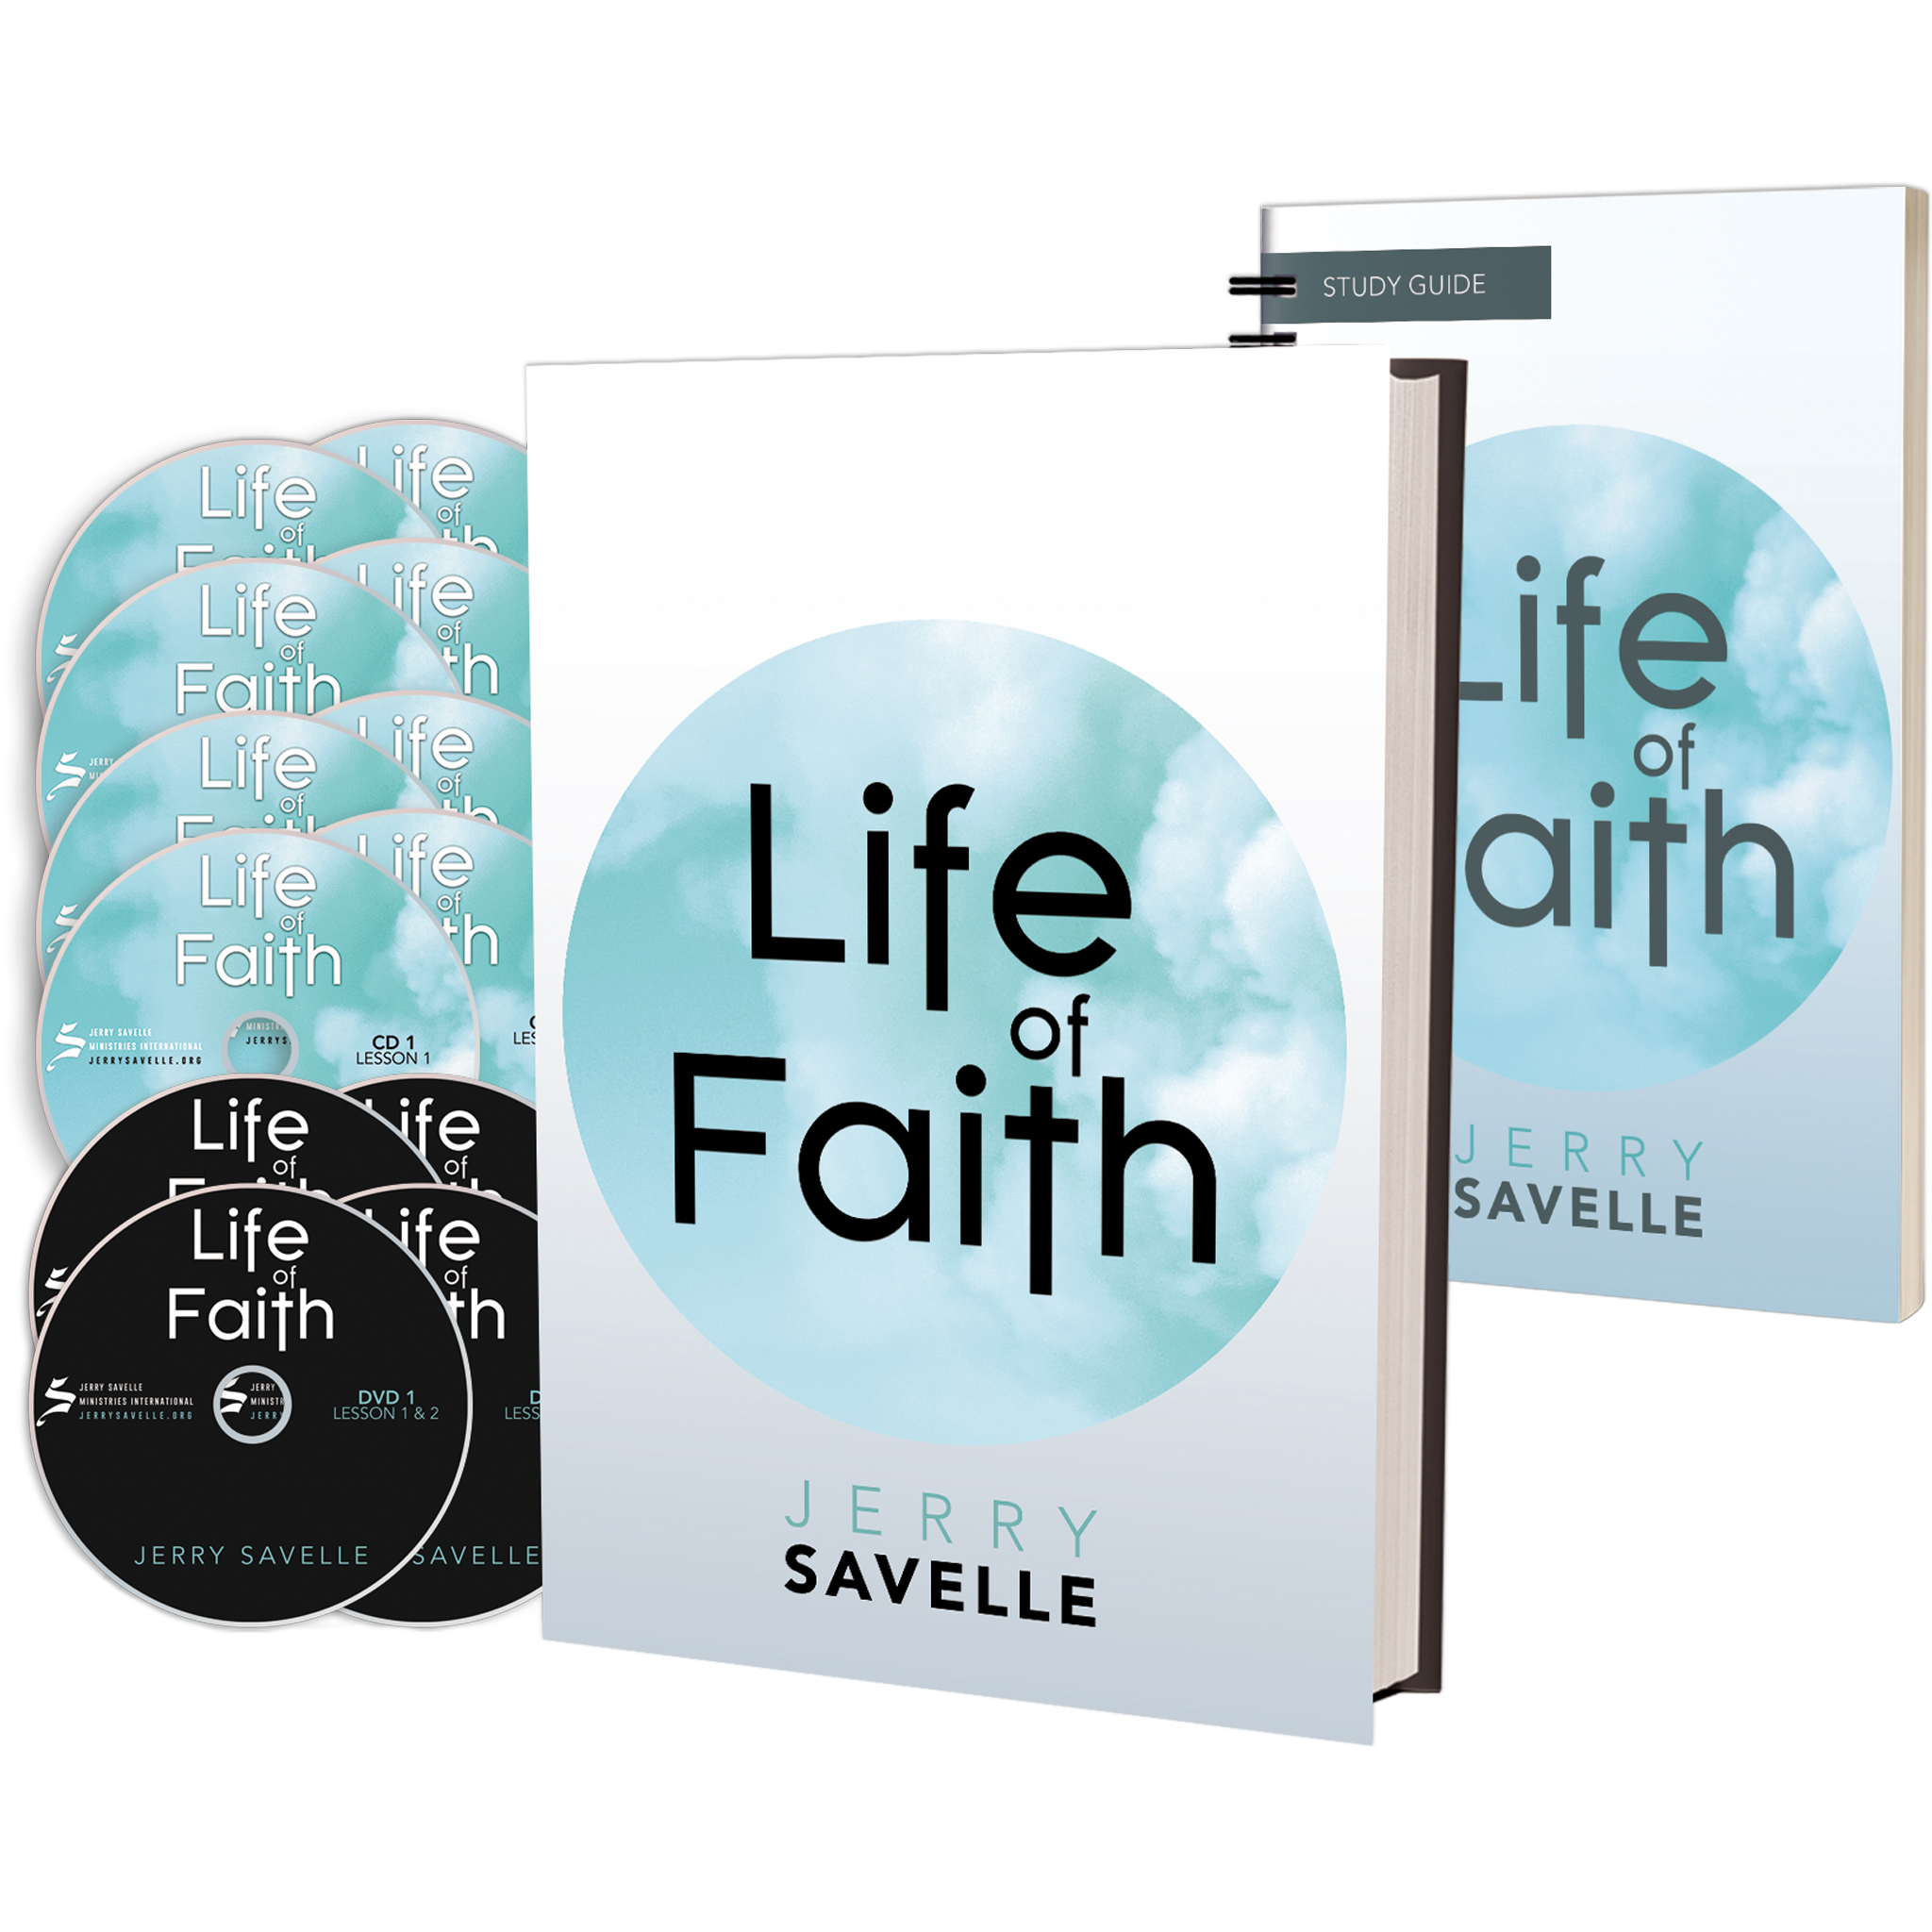 Life of Faith - Curriculum  Jerry Savelle Ministries International